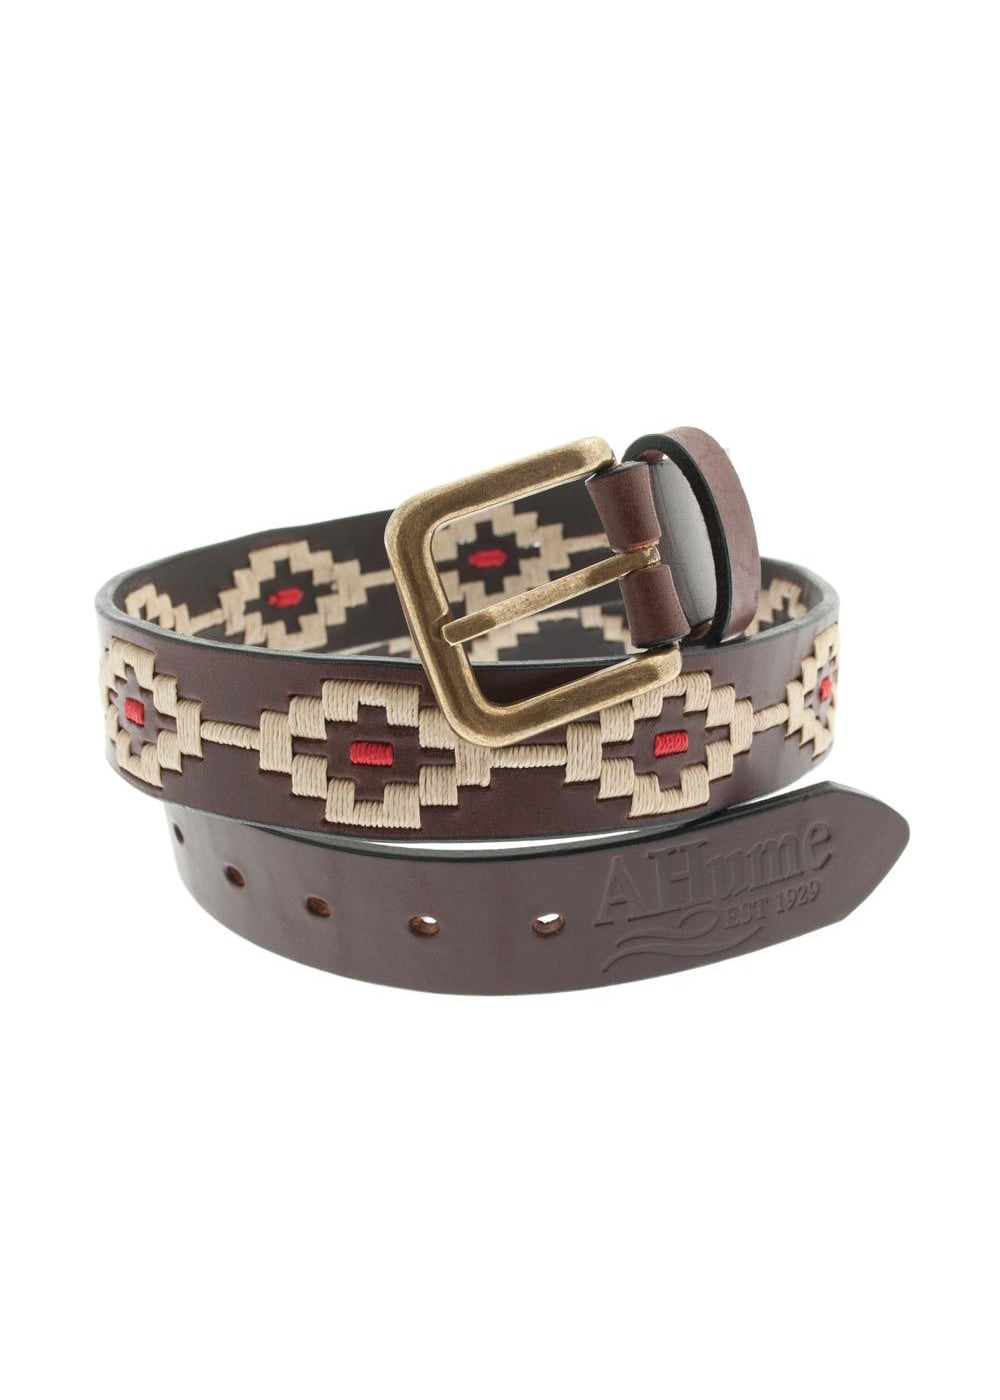 A Hume Pablo 1.5 Polo Belt Large Image